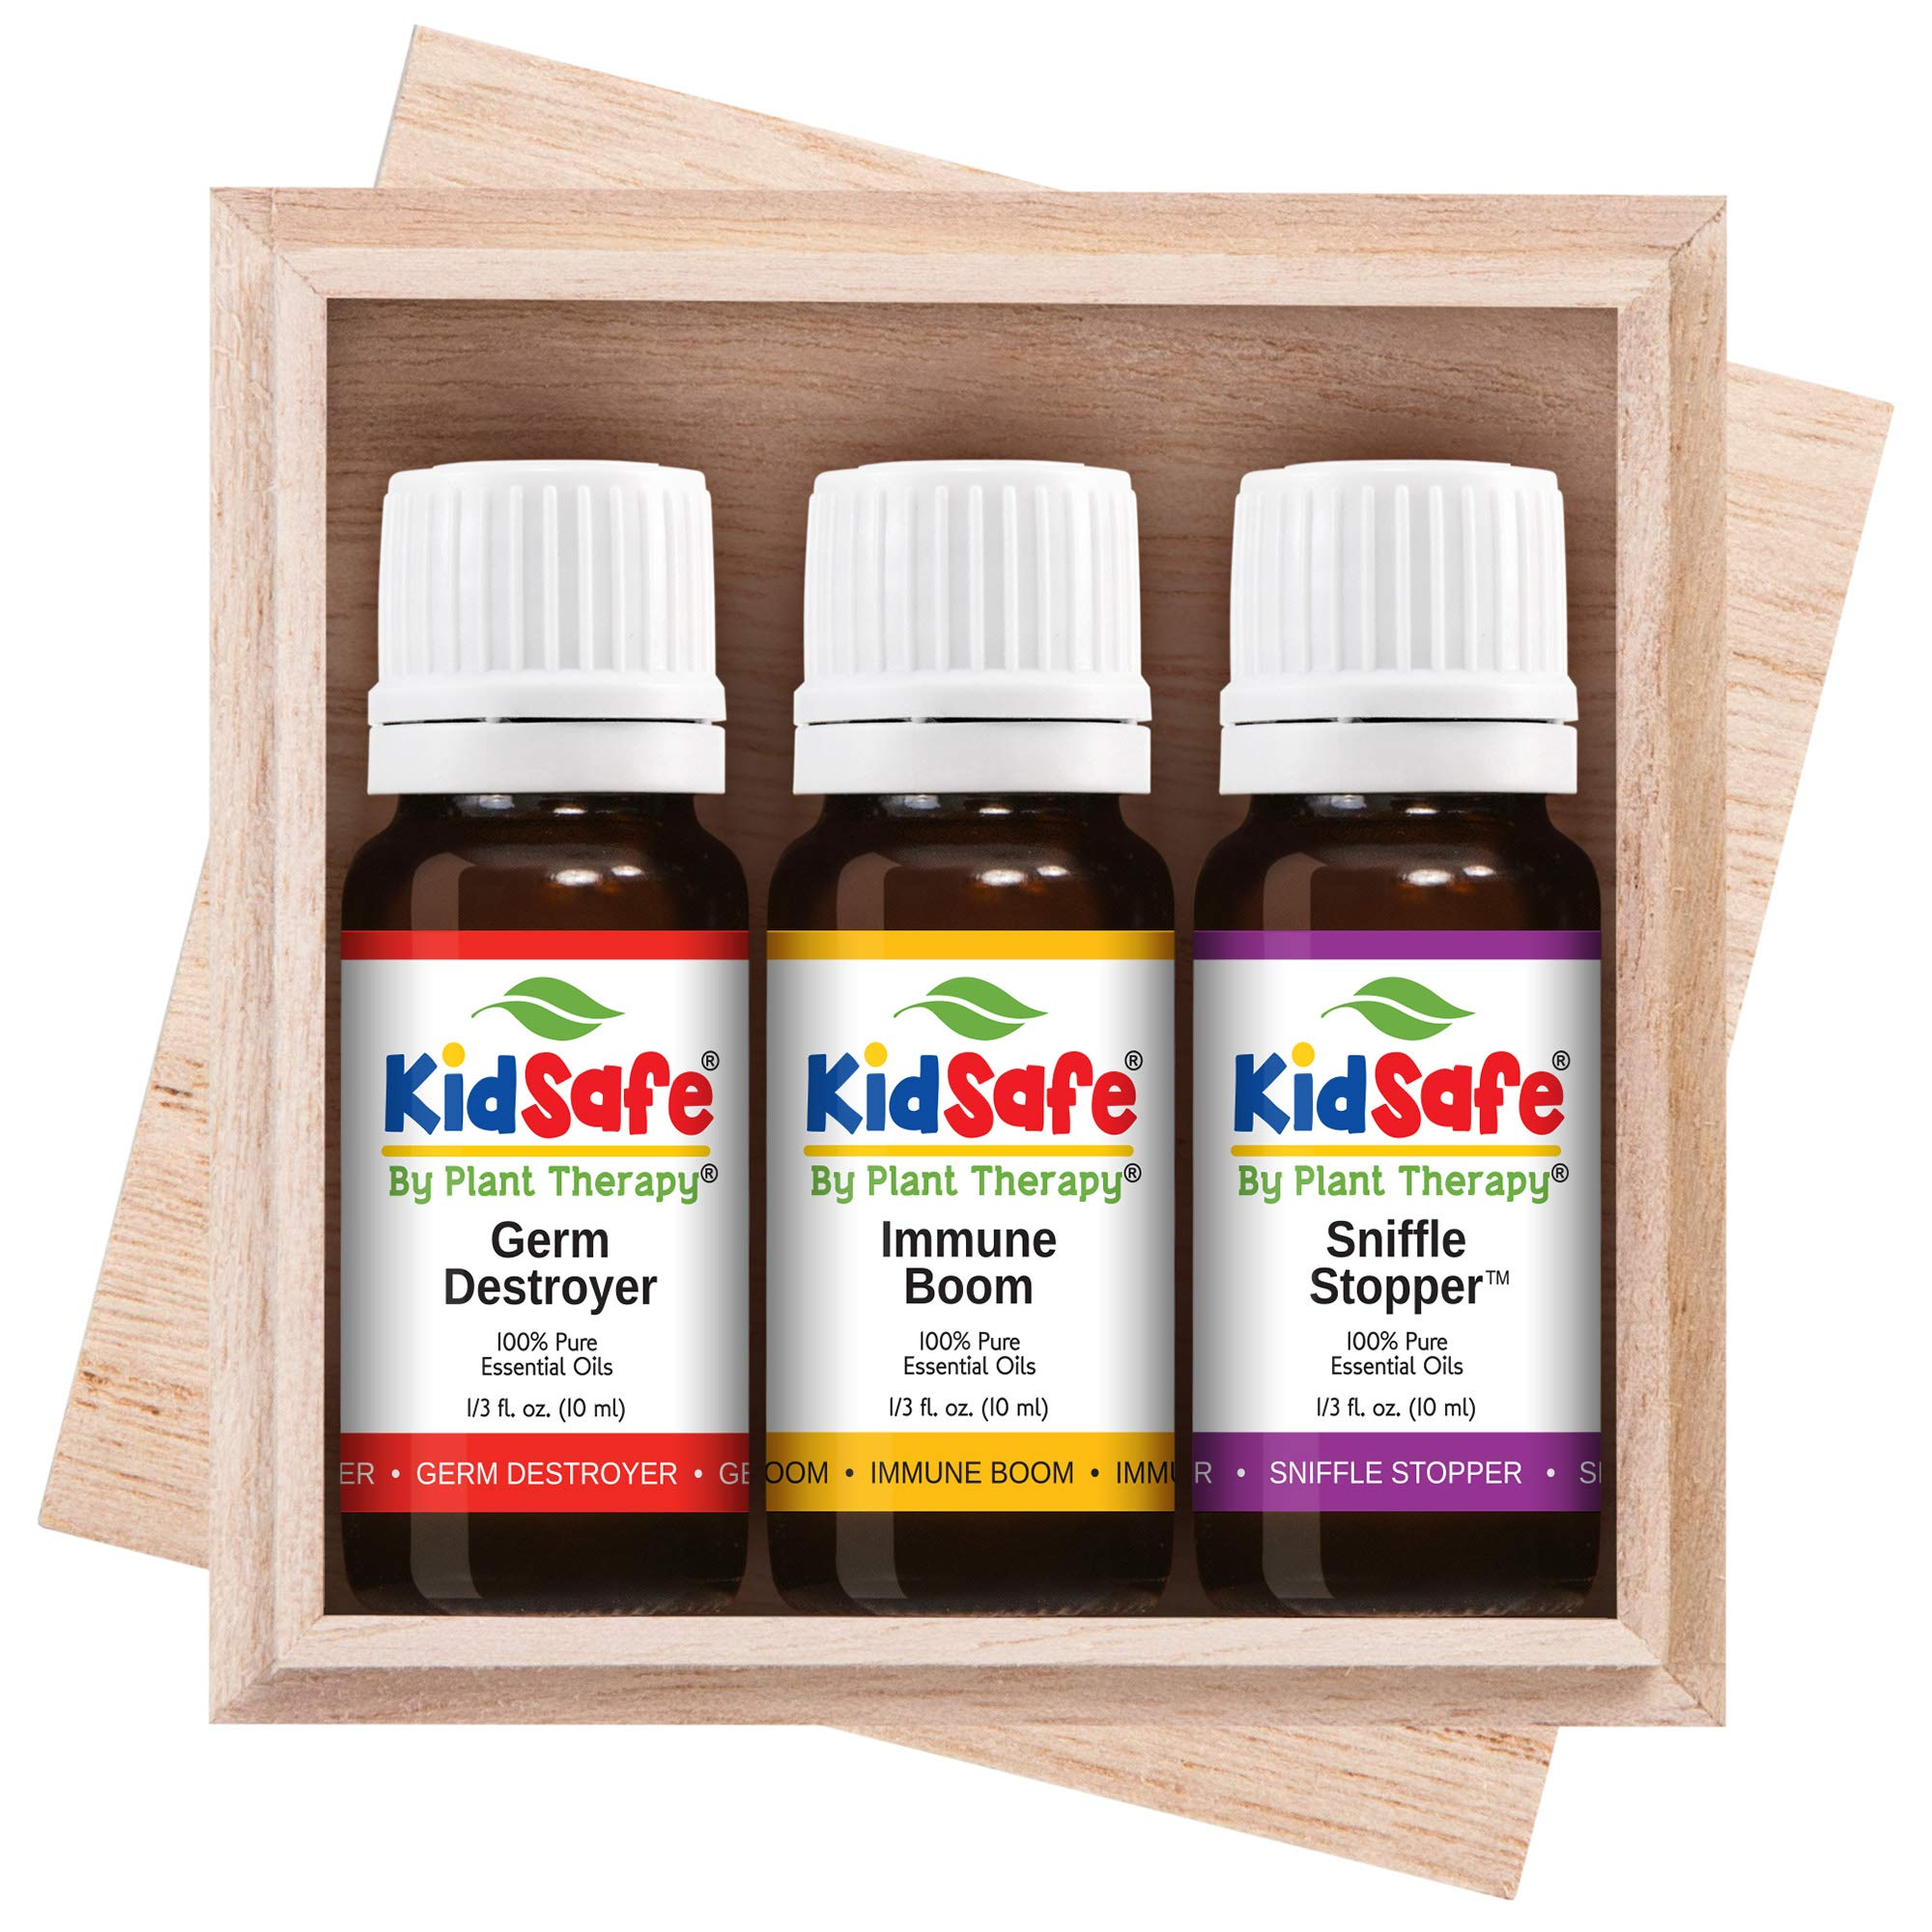 Plant Therapy Essential Oils KidSafe Wellness Sampler Boxed Set Includes Germ Destroyer, Immune Boom, Sniffle Stopper 100% Pure, Undiluted, Natural Aromatherapy 10 mL (1/3 oz) by Plant Therapy